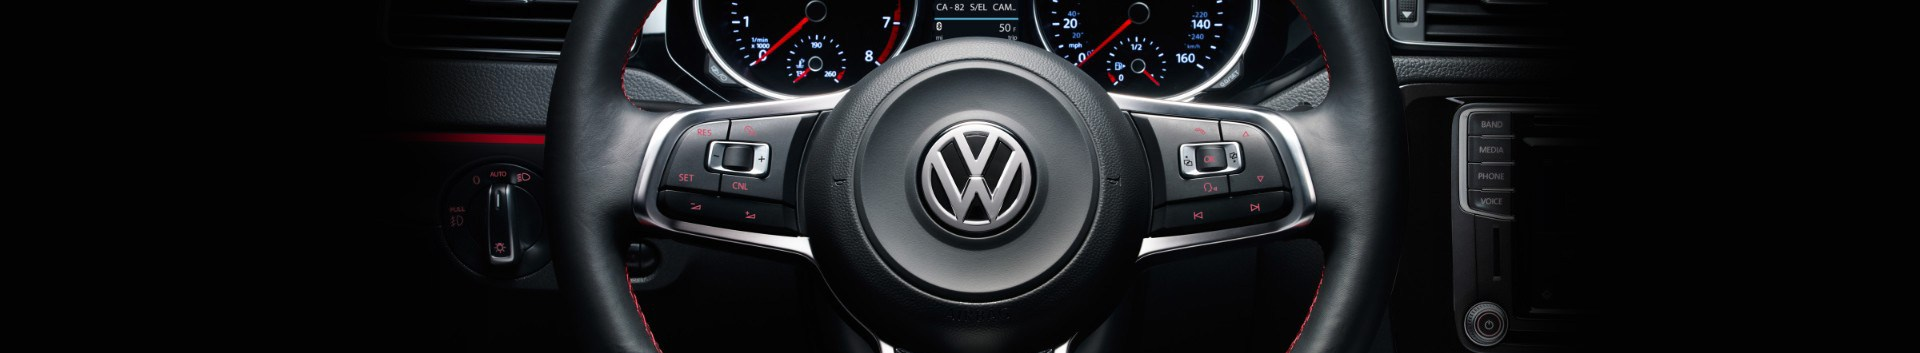 Volkswagen Value Package